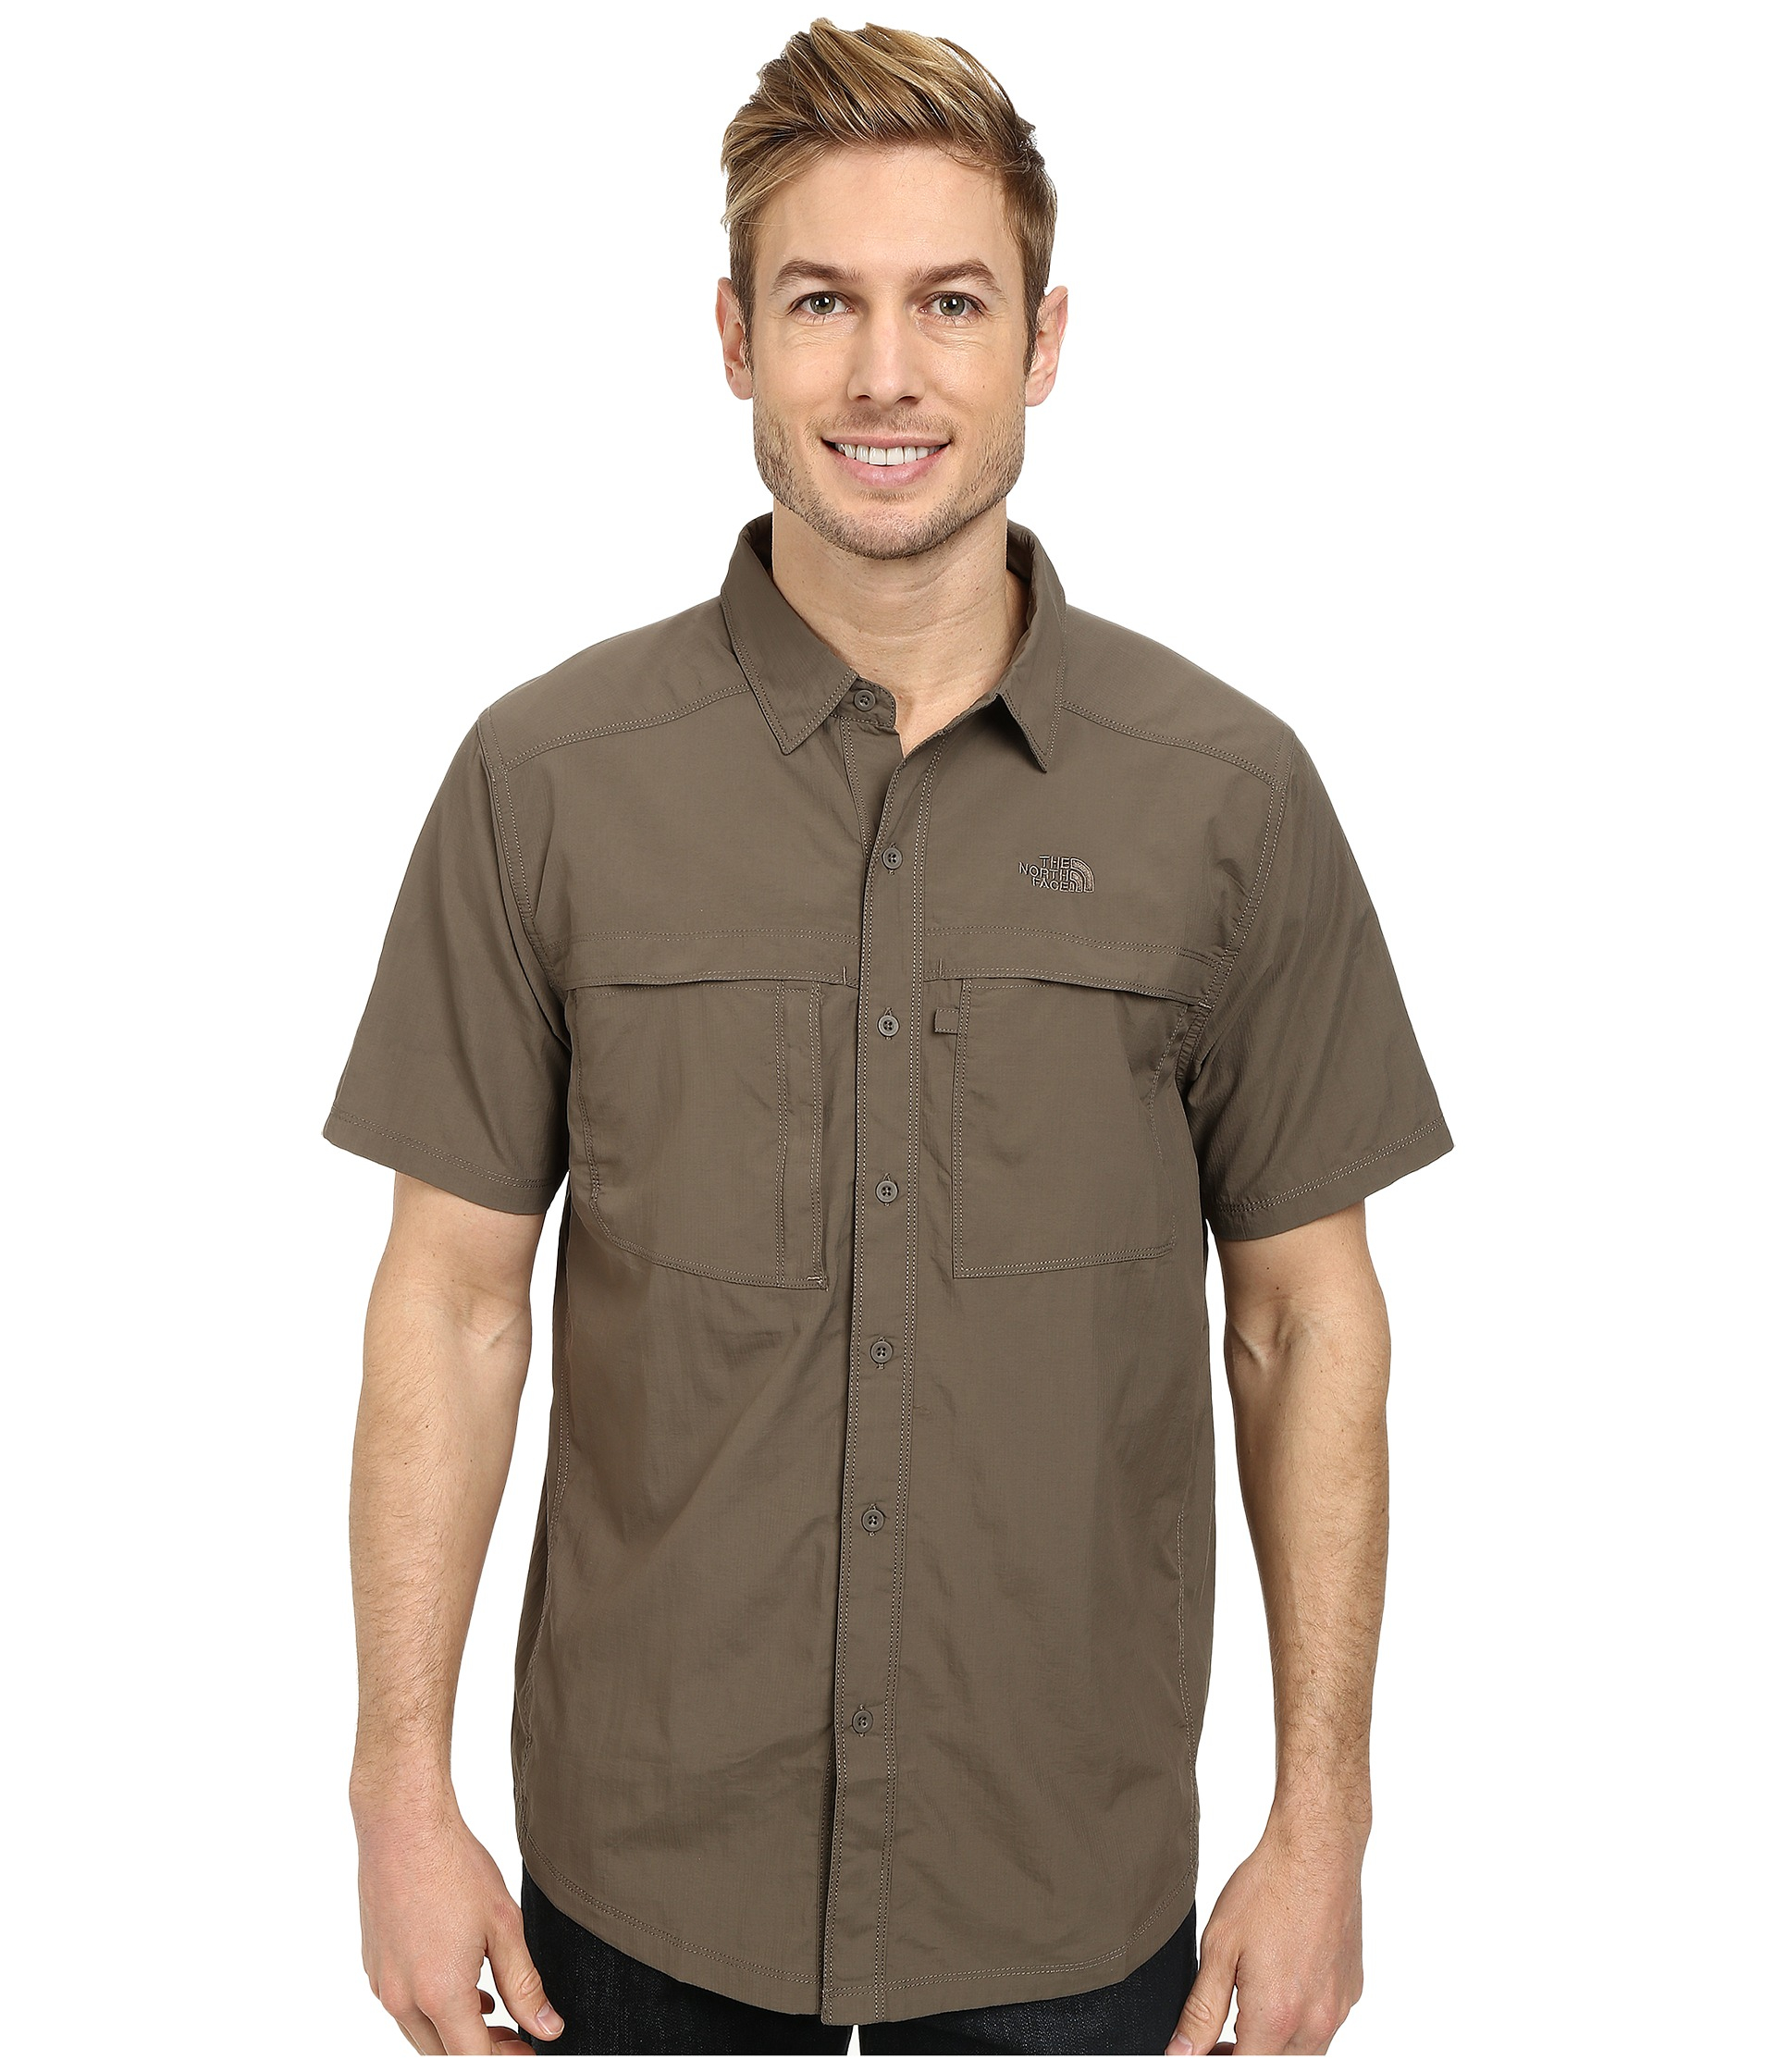 The North Face Mens Long Sleeve Cool Horizon Shirtr Weimaraner Brown - Shirts & Tops